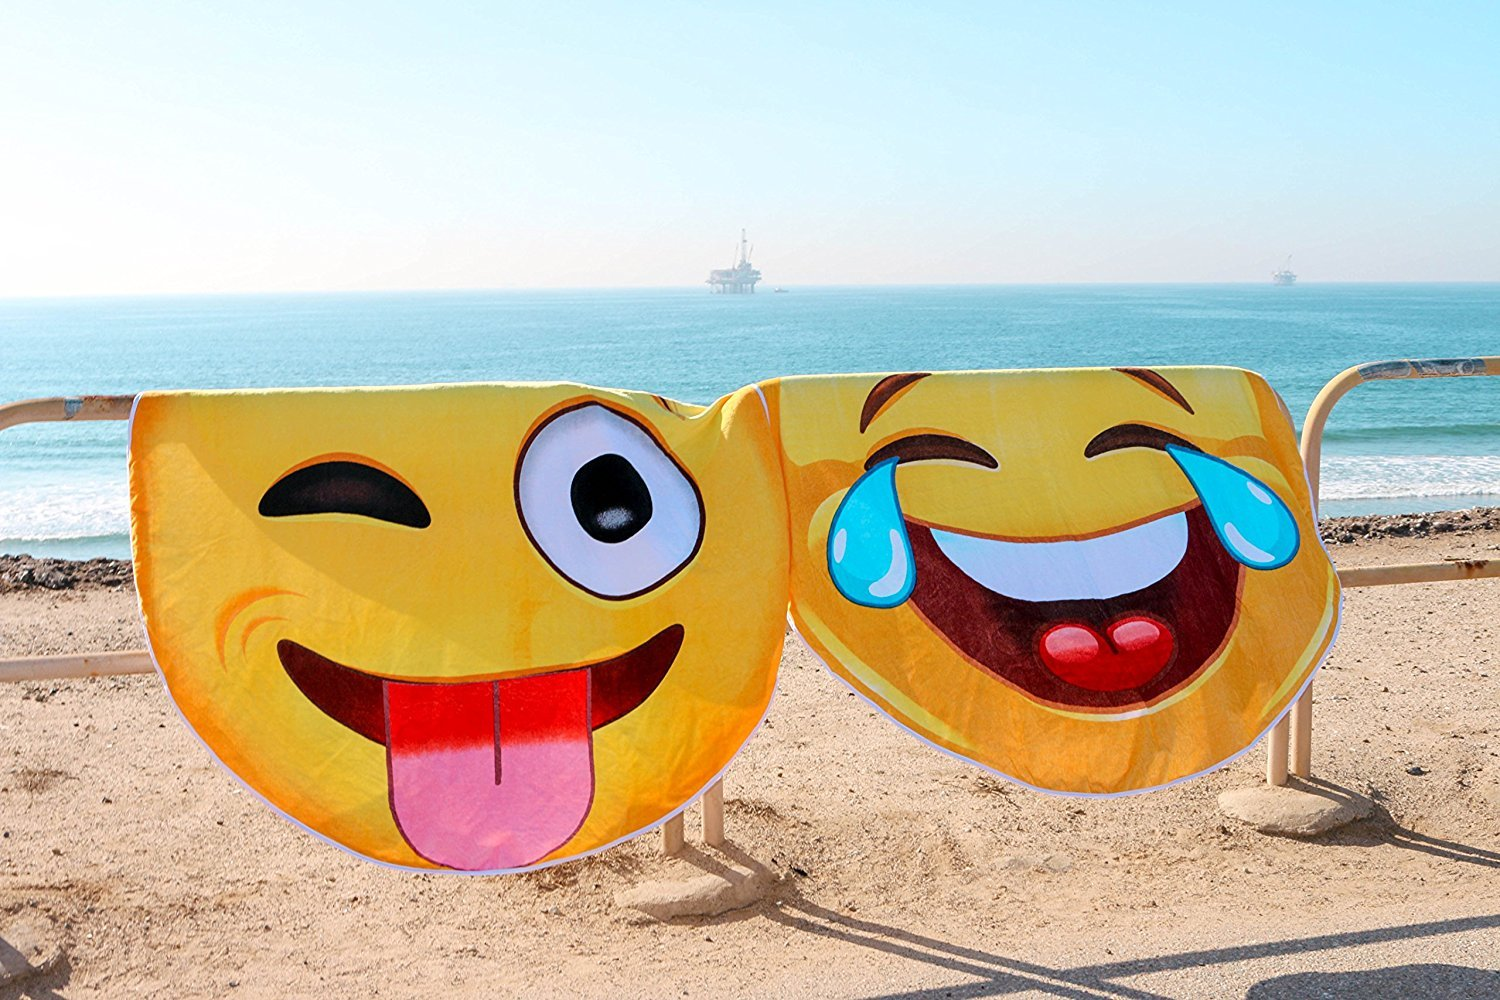 Crying Laughing Emoji Round Towel Chiffon Roundie Cry Laugh Face Circle Beach Blanket Gigantic Emoji Chiffon Towel by CHARM HOME (Image #2)